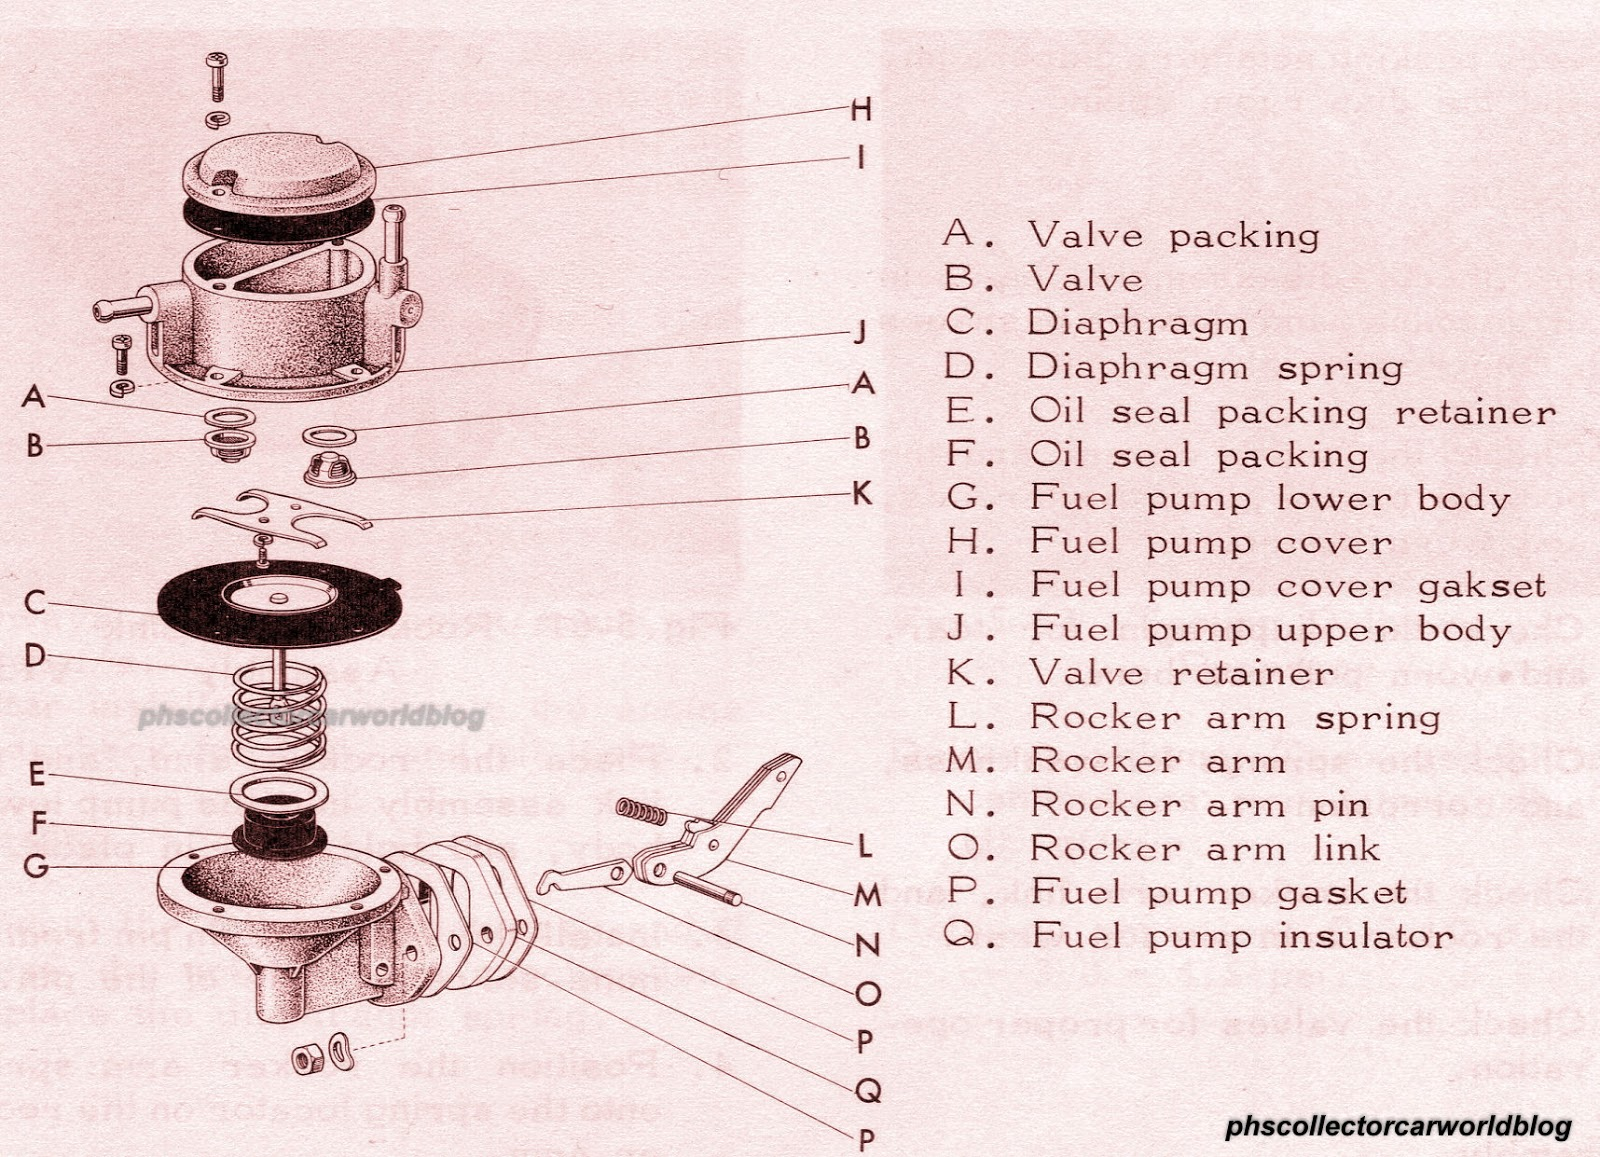 1985 Buick Riviera Wiring Diagram Moreover 1973 Ford Ltd Wiring